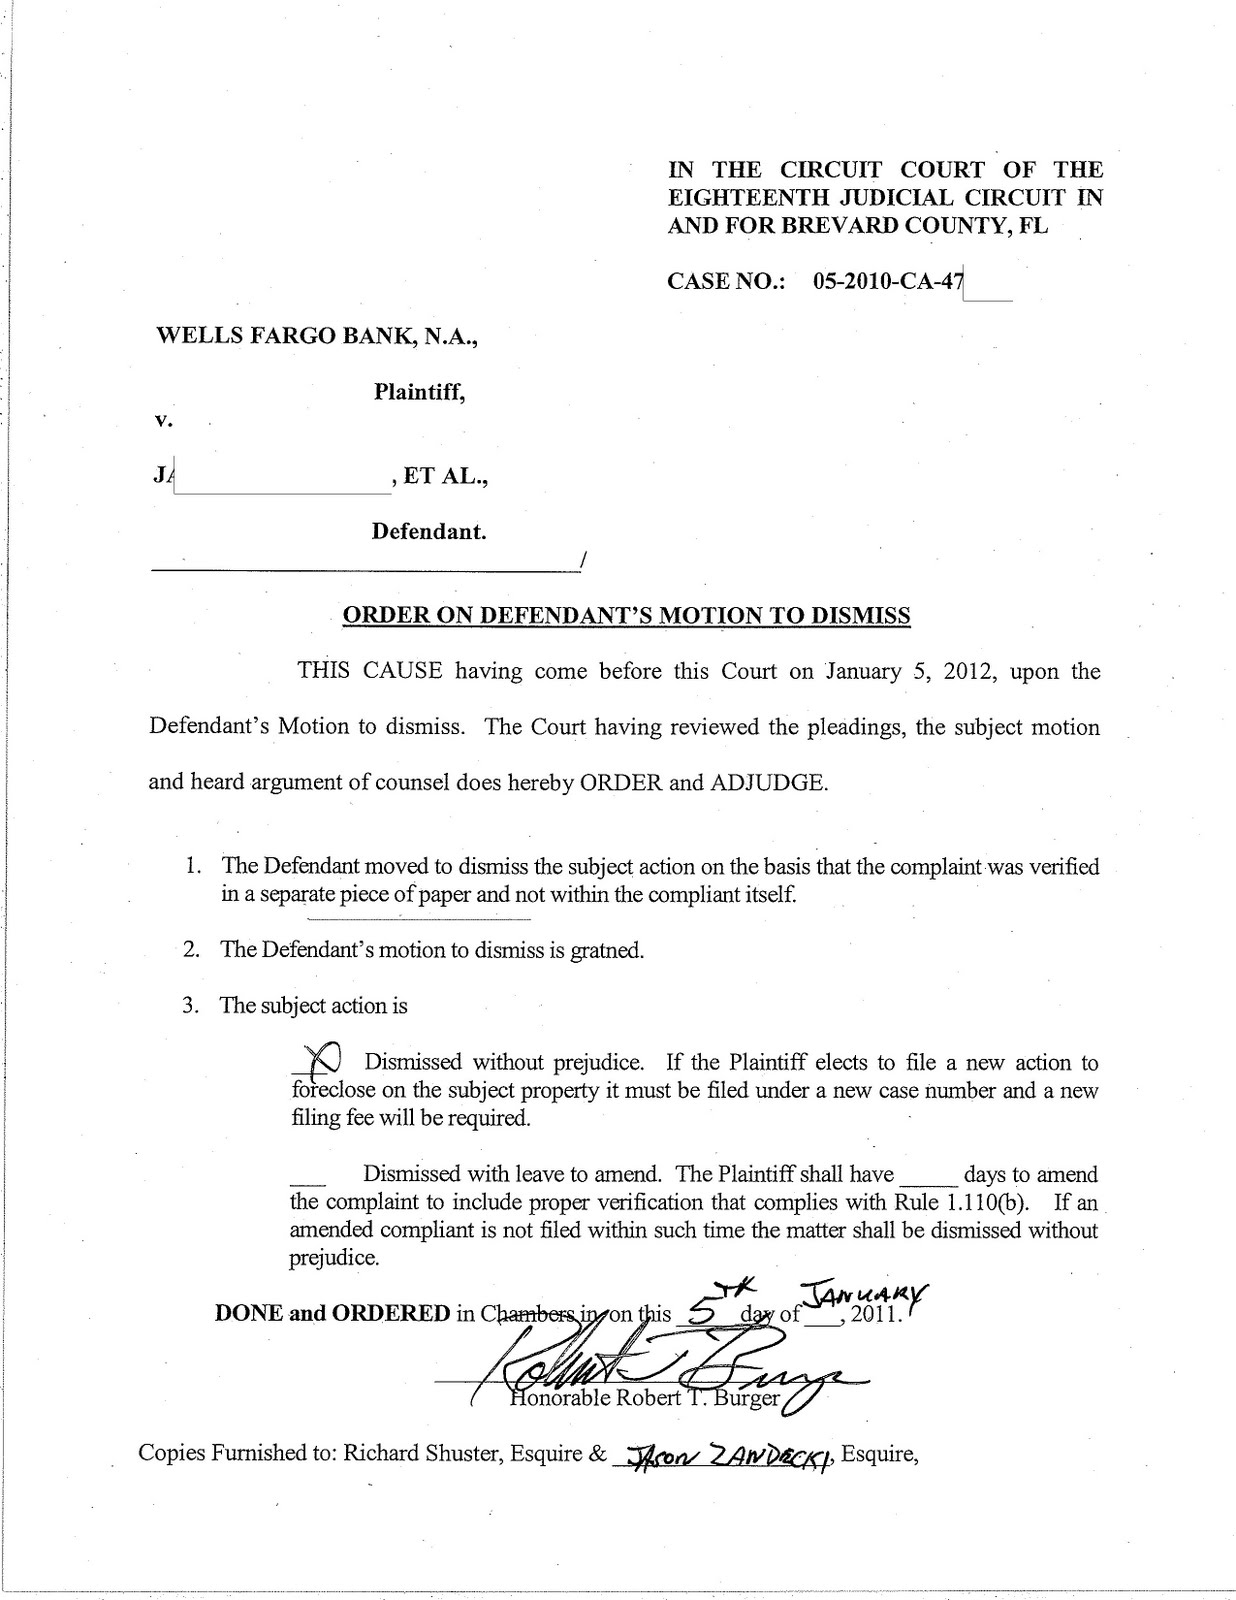 motion to dismiss with prejudice template - florida foreclosure defense blog 2012